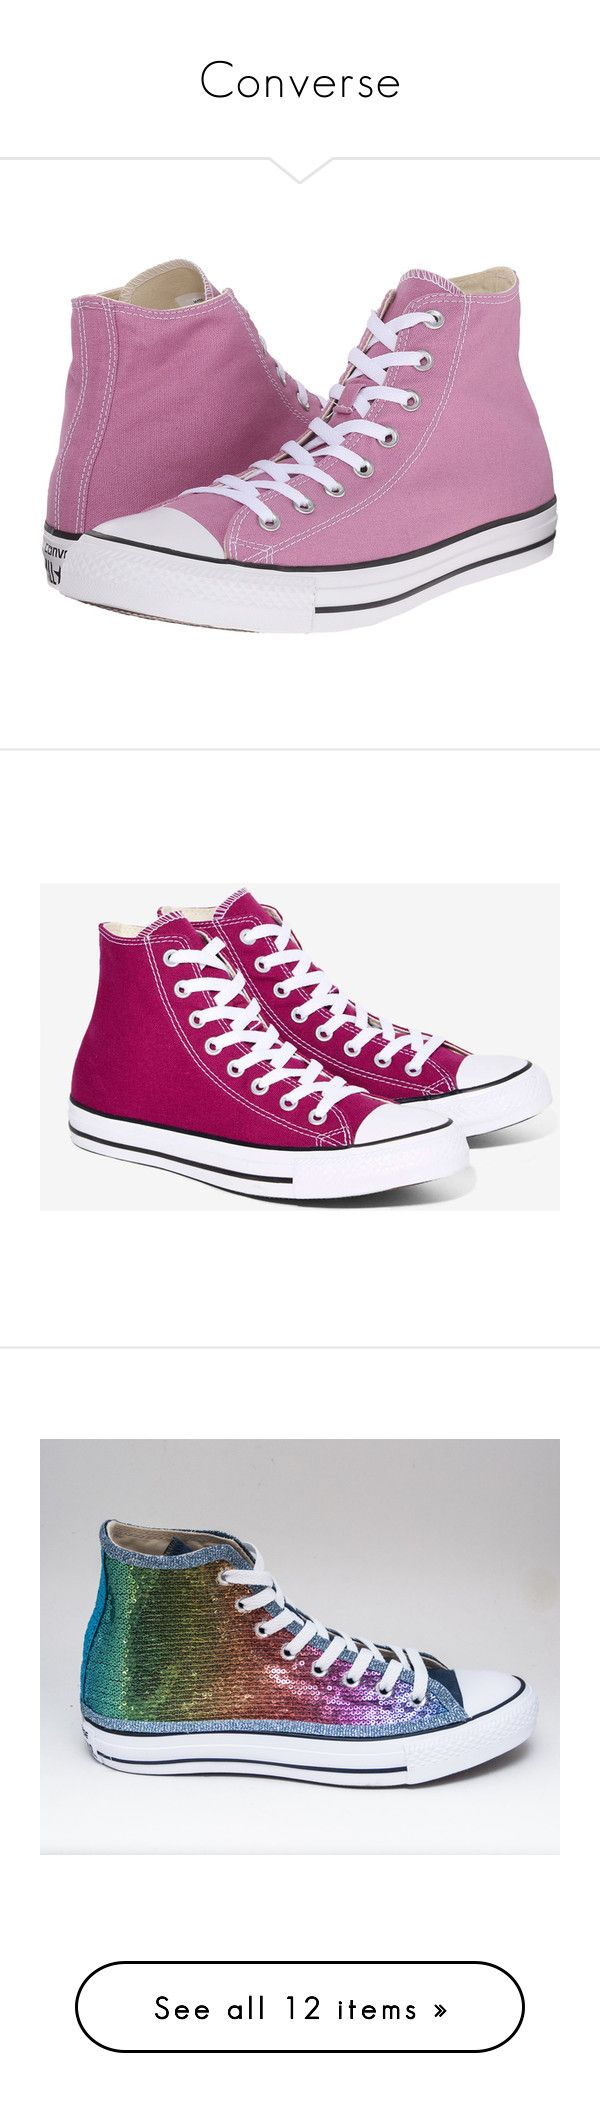 """""""Converse"""" by heyitsmac101 ❤ liked on Polyvore featuring shoes, sneakers, tennis shoes, pink, purple high top sneakers, pink high tops, converse high tops, high top tennis shoes, converse sneakers and canvas sneakers"""